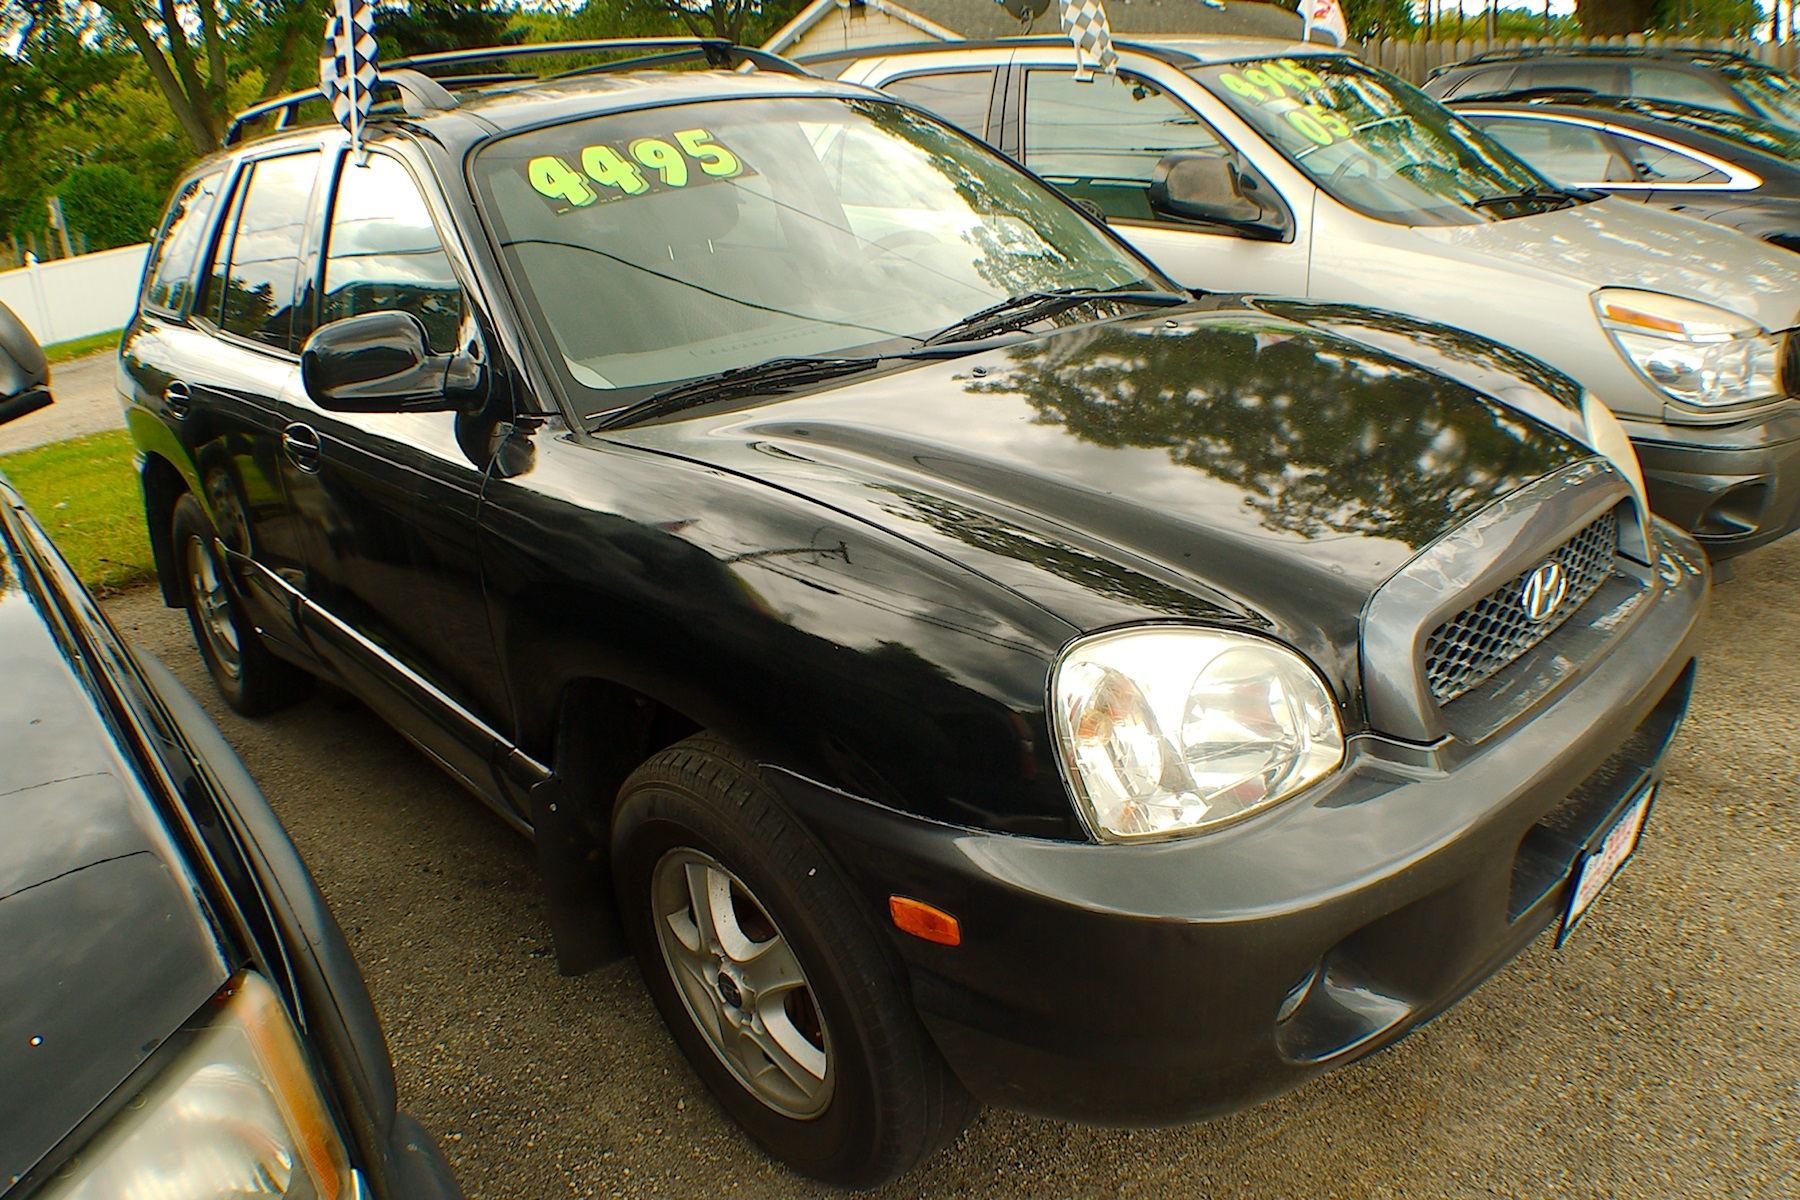 2003 Hyundai Santa Fe Black SUV Sale Bannockburn Barrington Beach Park